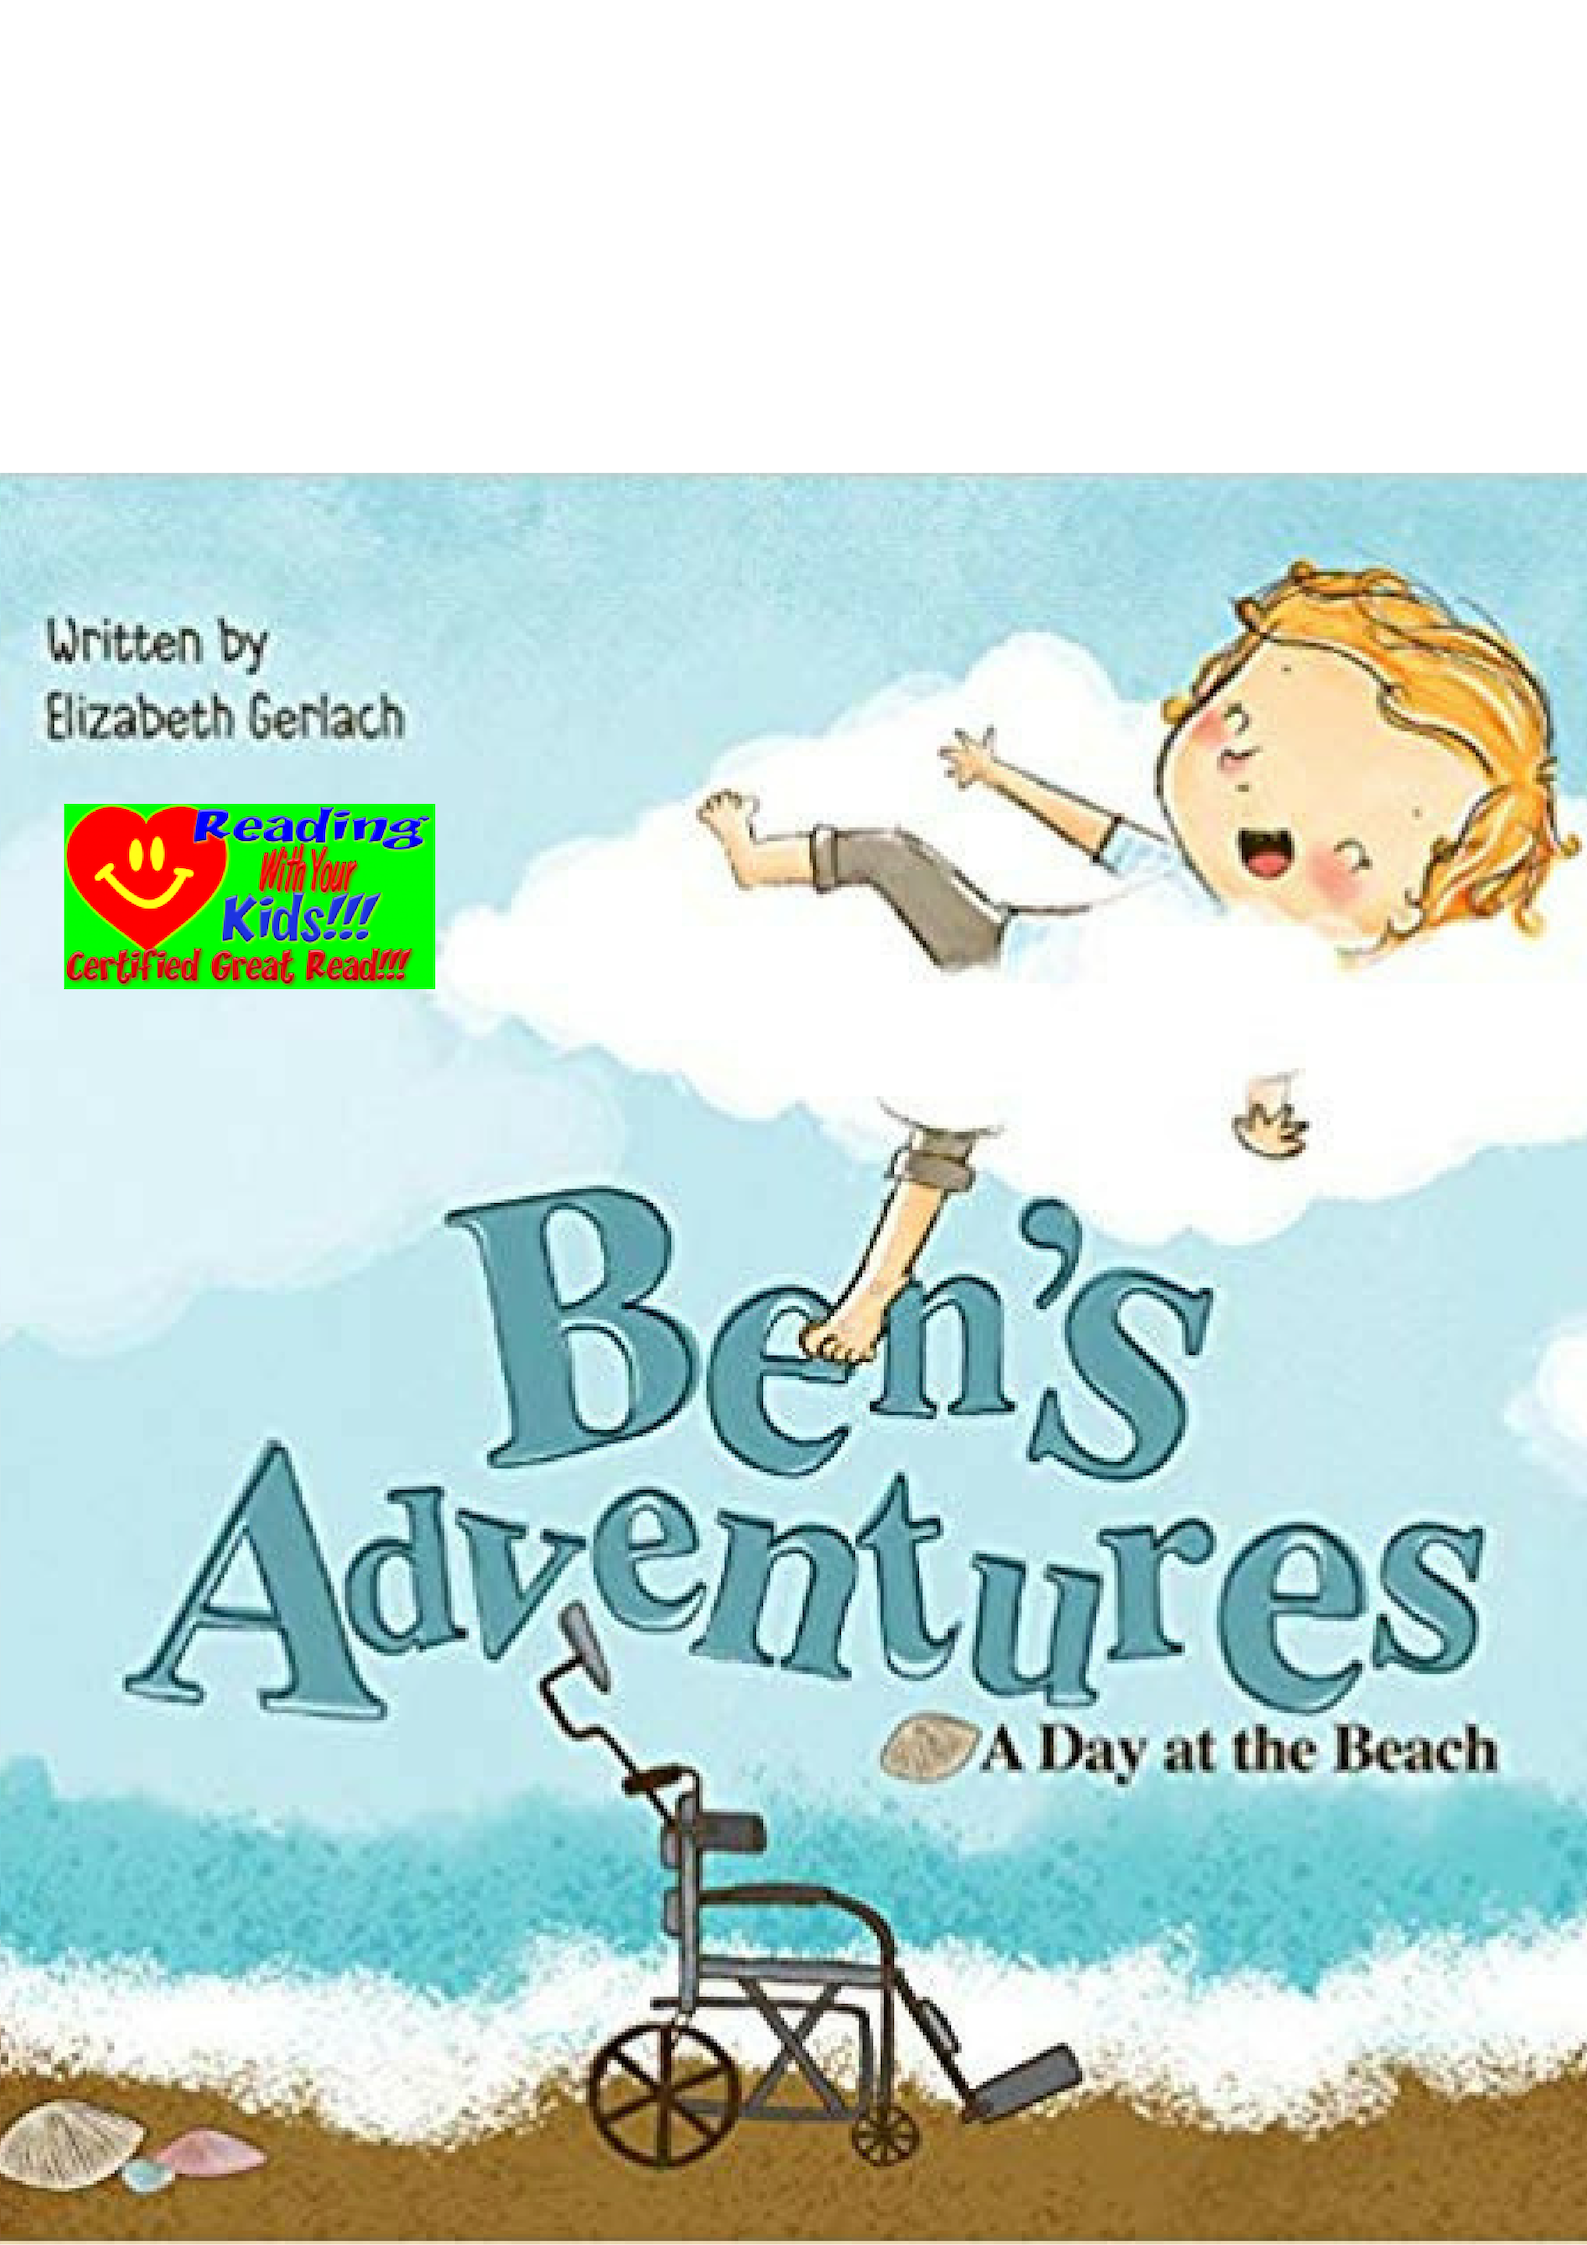 Ben's Adventures: A Day at the Beach: #RWYK Certified Great Read!